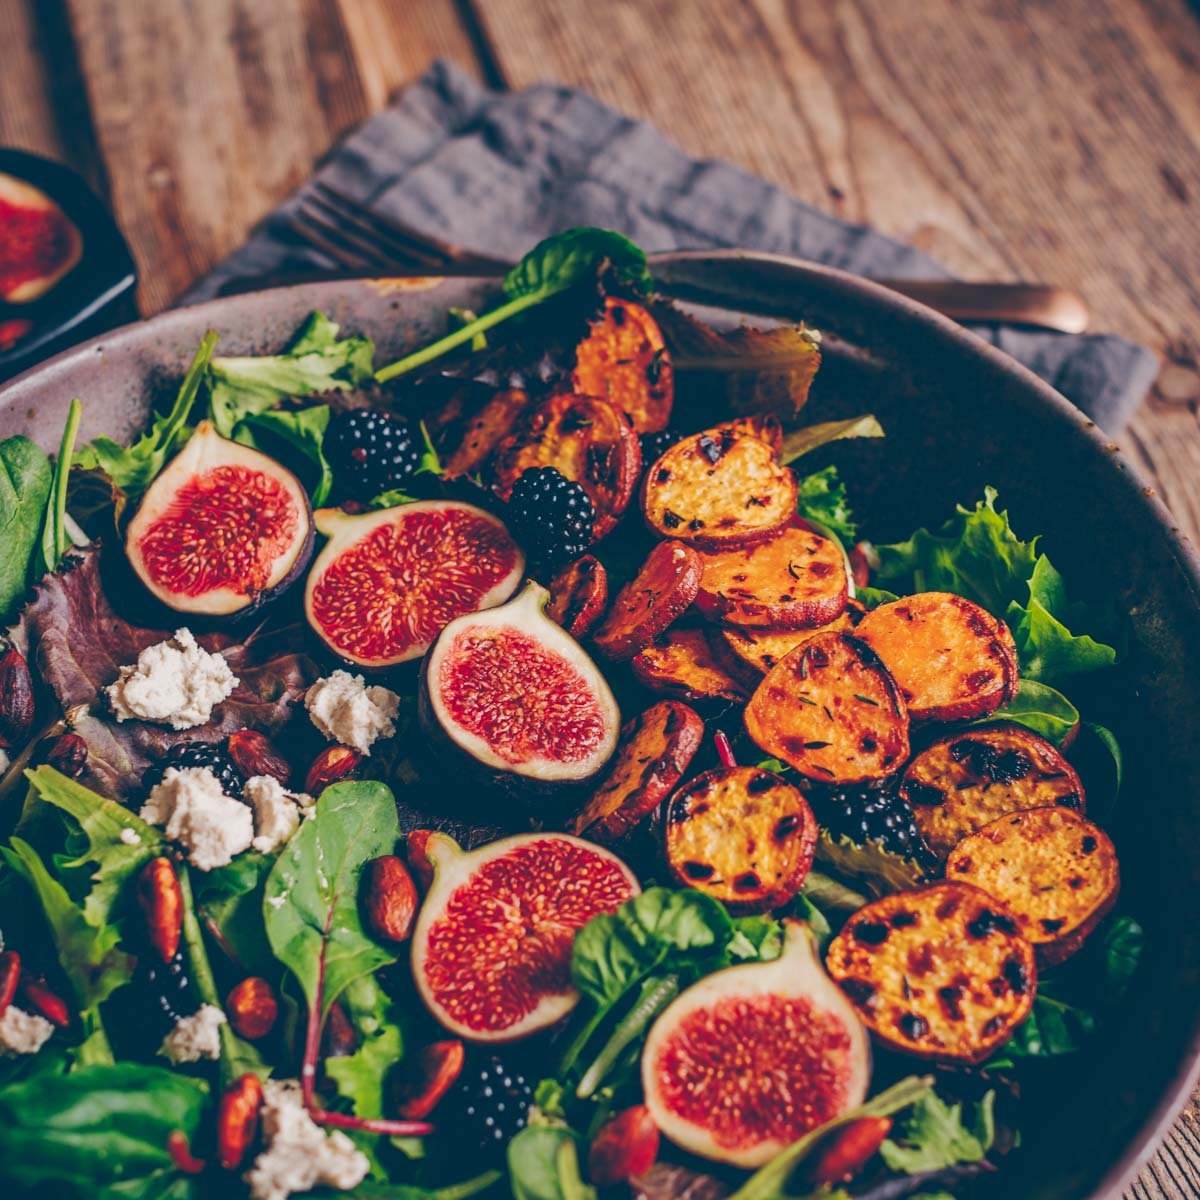 Salad bowl with roasted sweet potatoes and figs